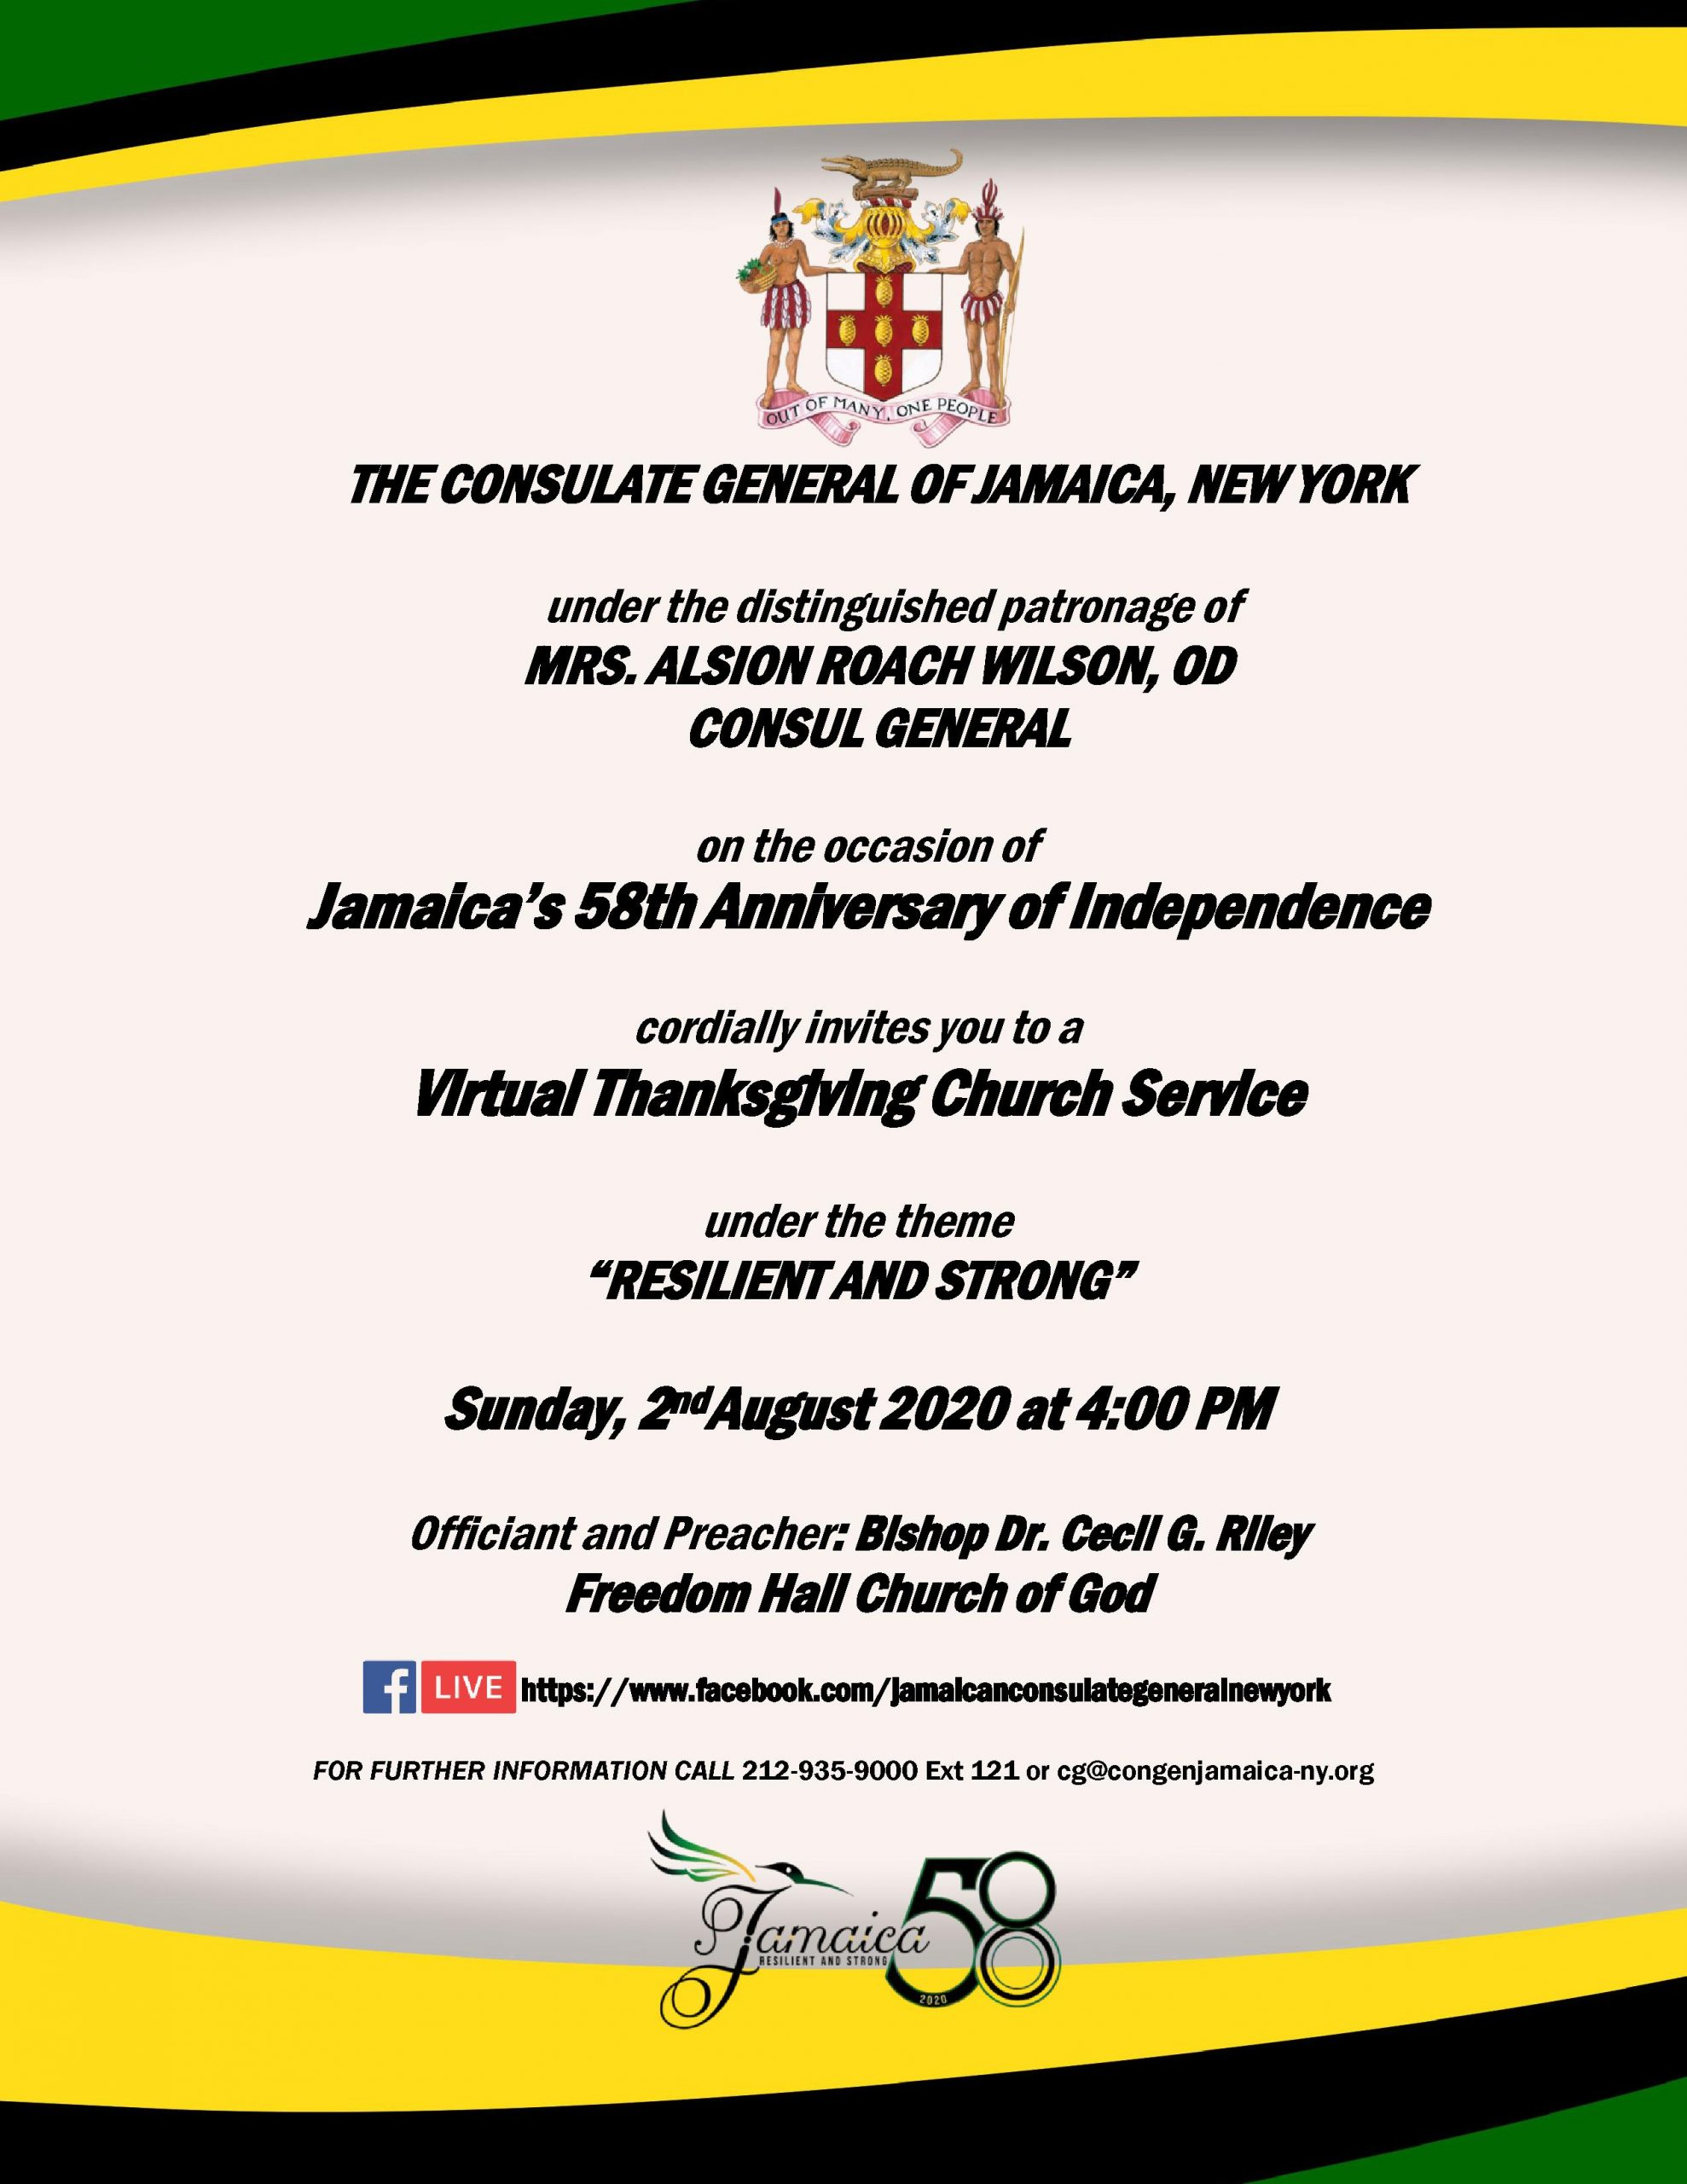 Jamaica's 58th Anniversary of Independence